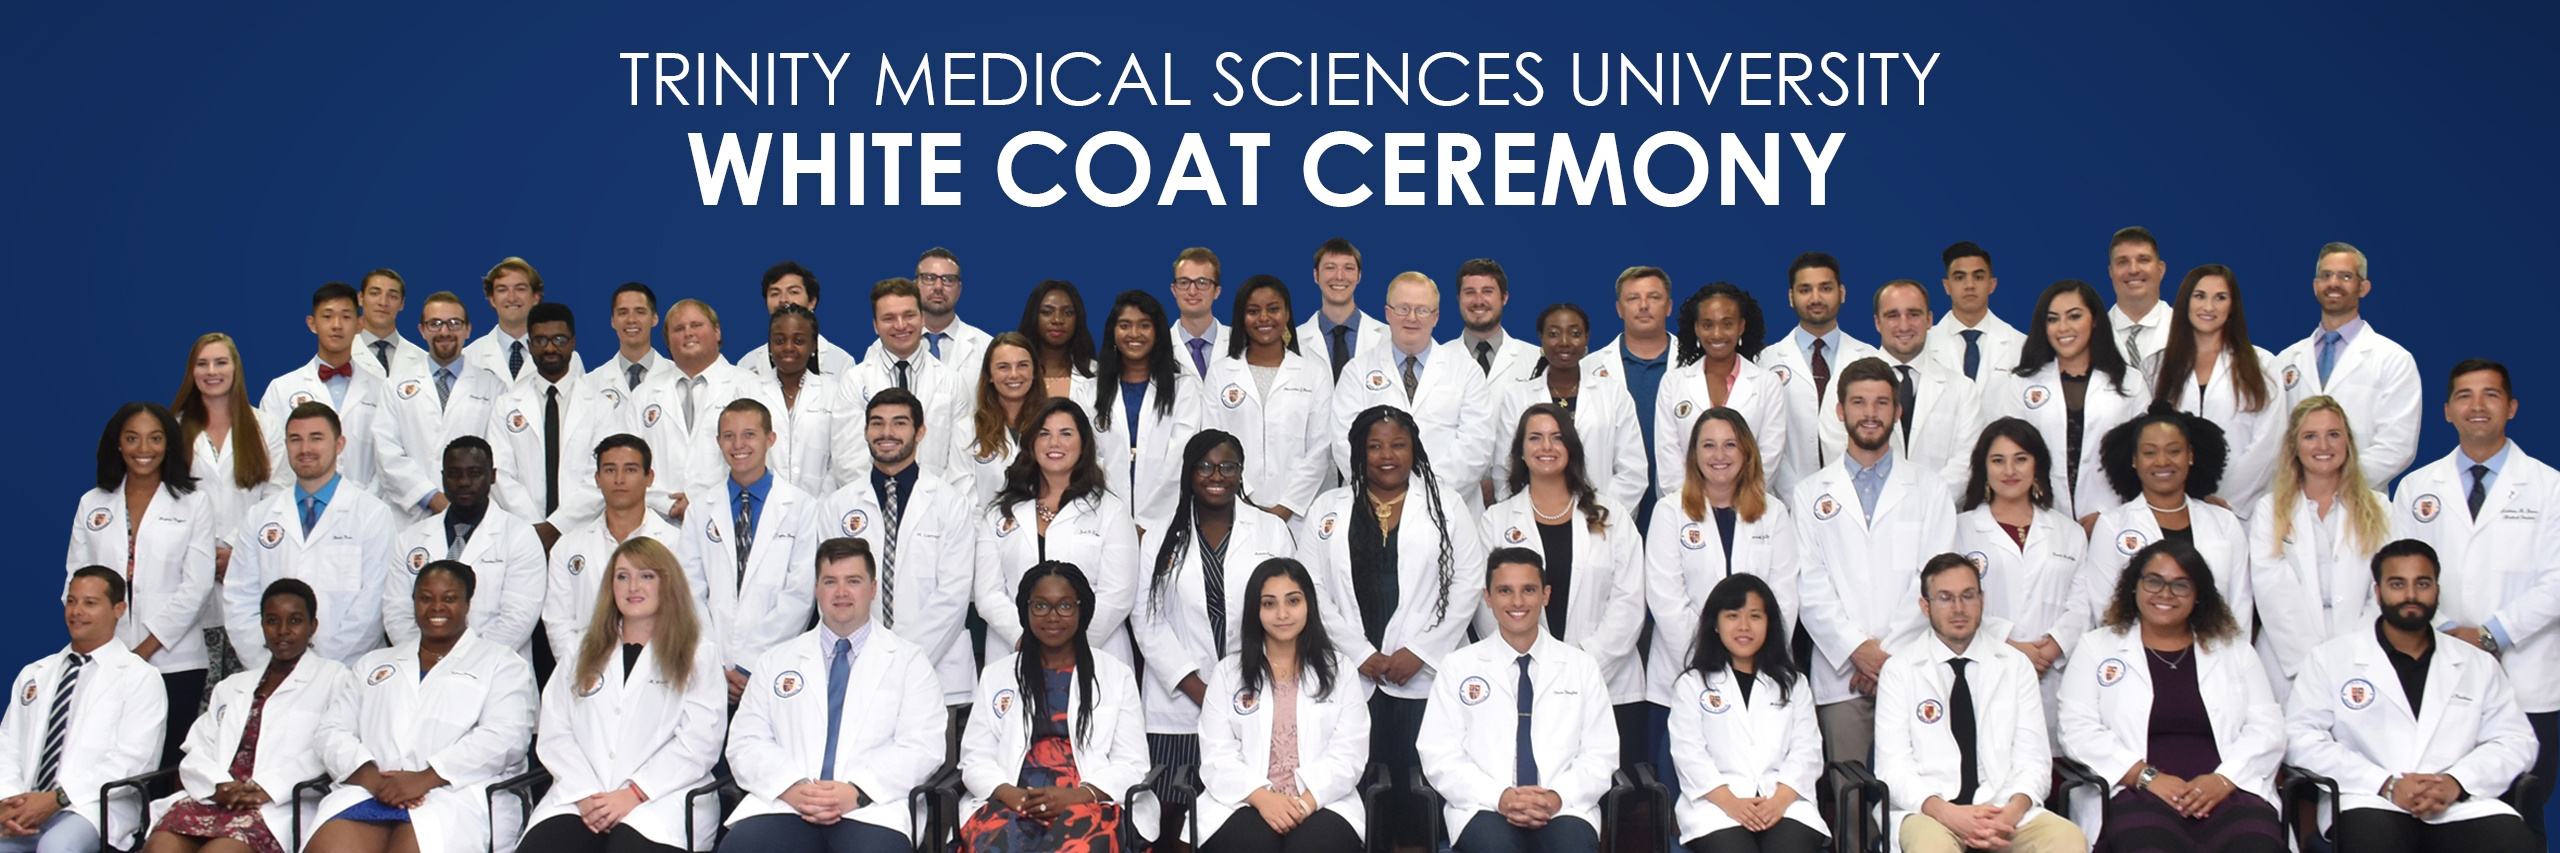 Trinity Medical Sciences University White Coat Ceremony